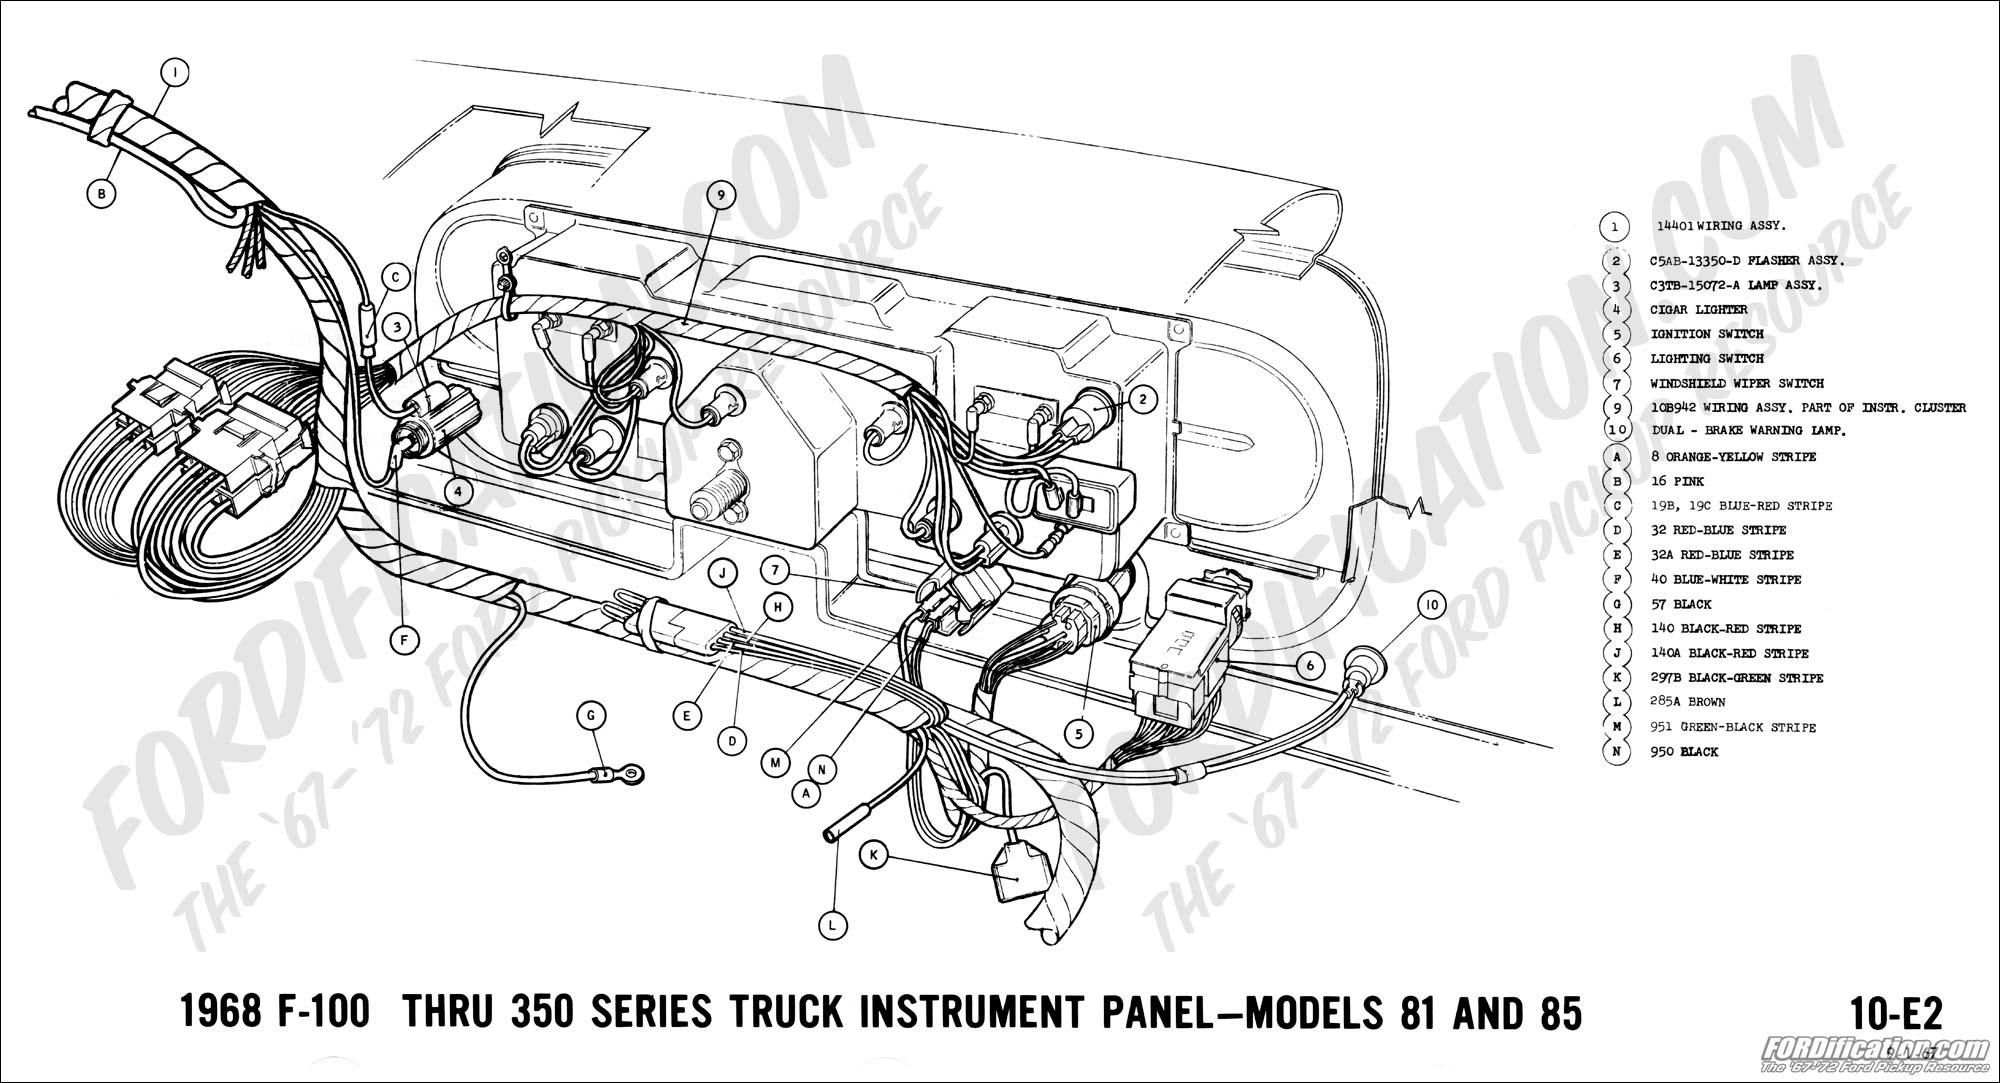 Park Lights Wire Diagram 1970 Mustang Schema Wiring Diagrams Schematic For Library Ford 1968 F 100